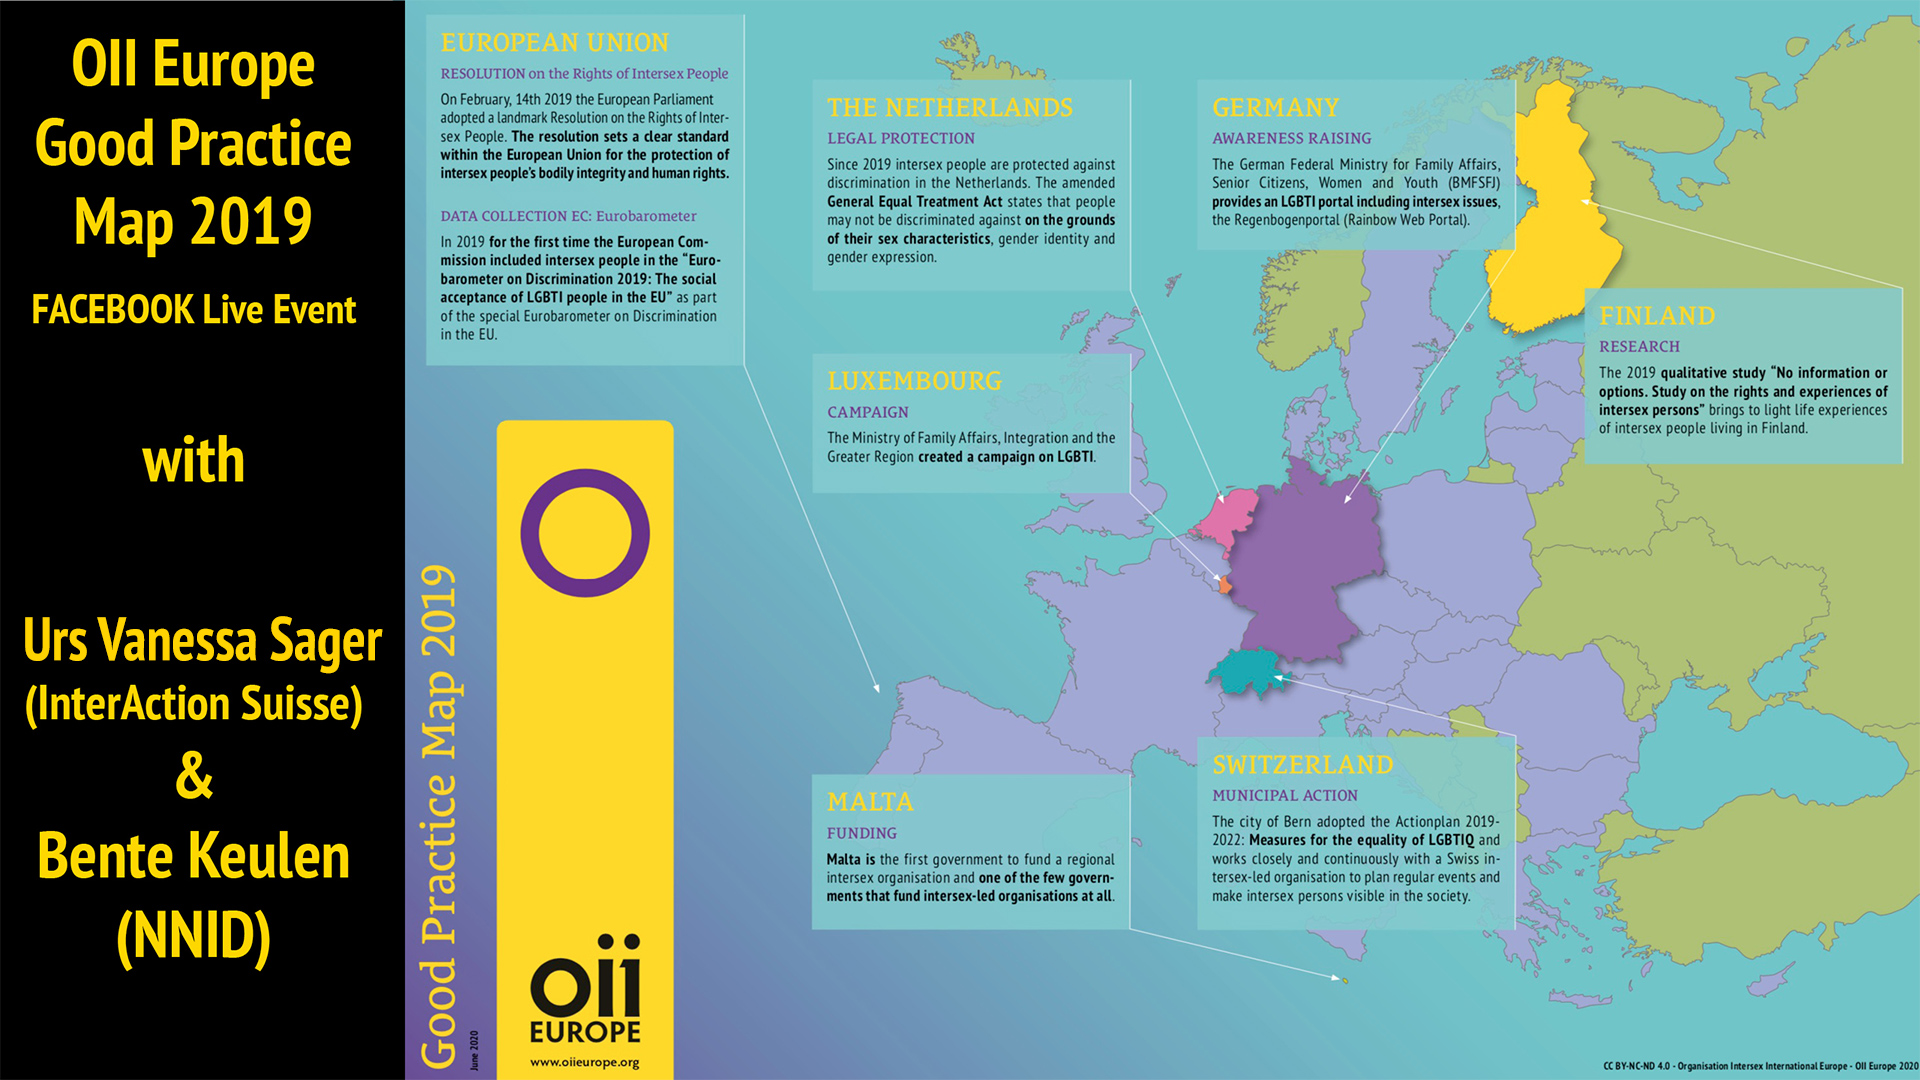 OII Europe Good Practice Map 2019 Launch Event (video)